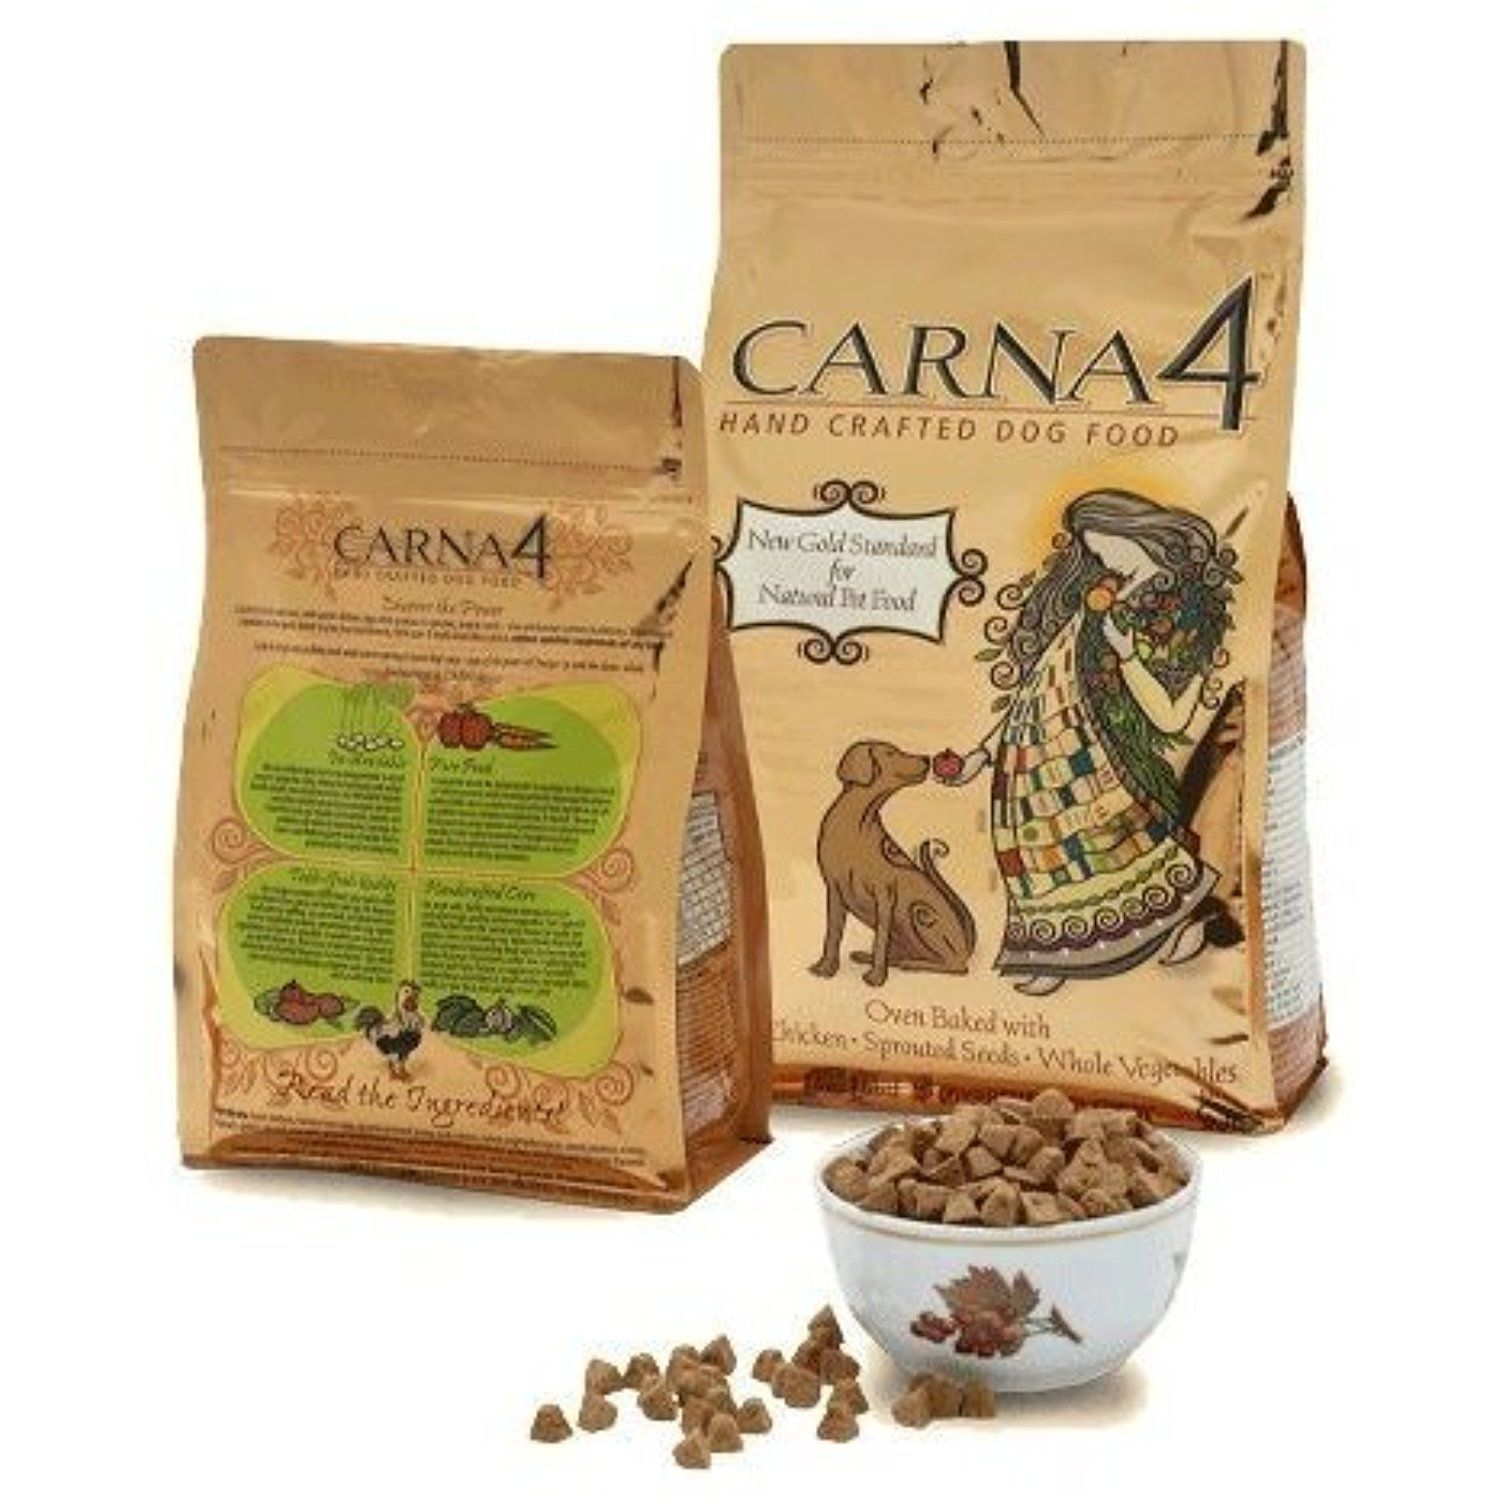 Carna4 Hand Crafted Dog Food, 6Pound, Chicken You can